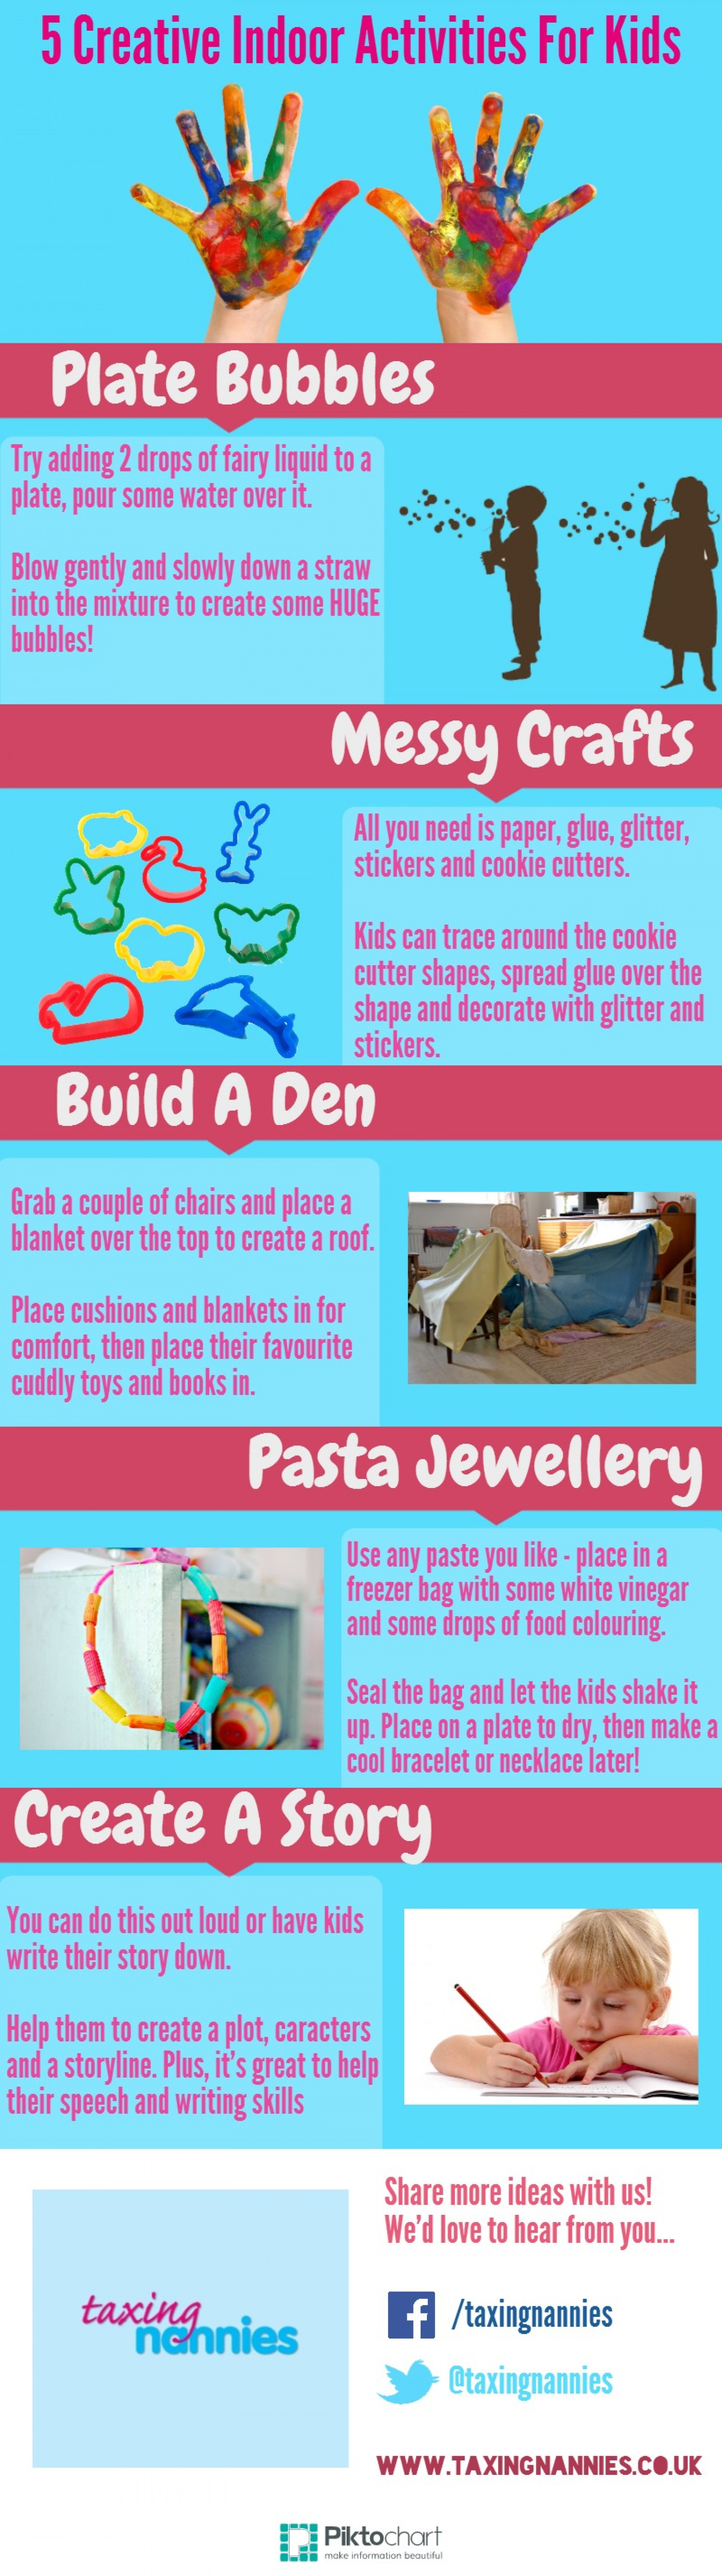 5 creative indoor activities for kids 53343052e6403 w1500 5 Creative Indoor Activities For Kids